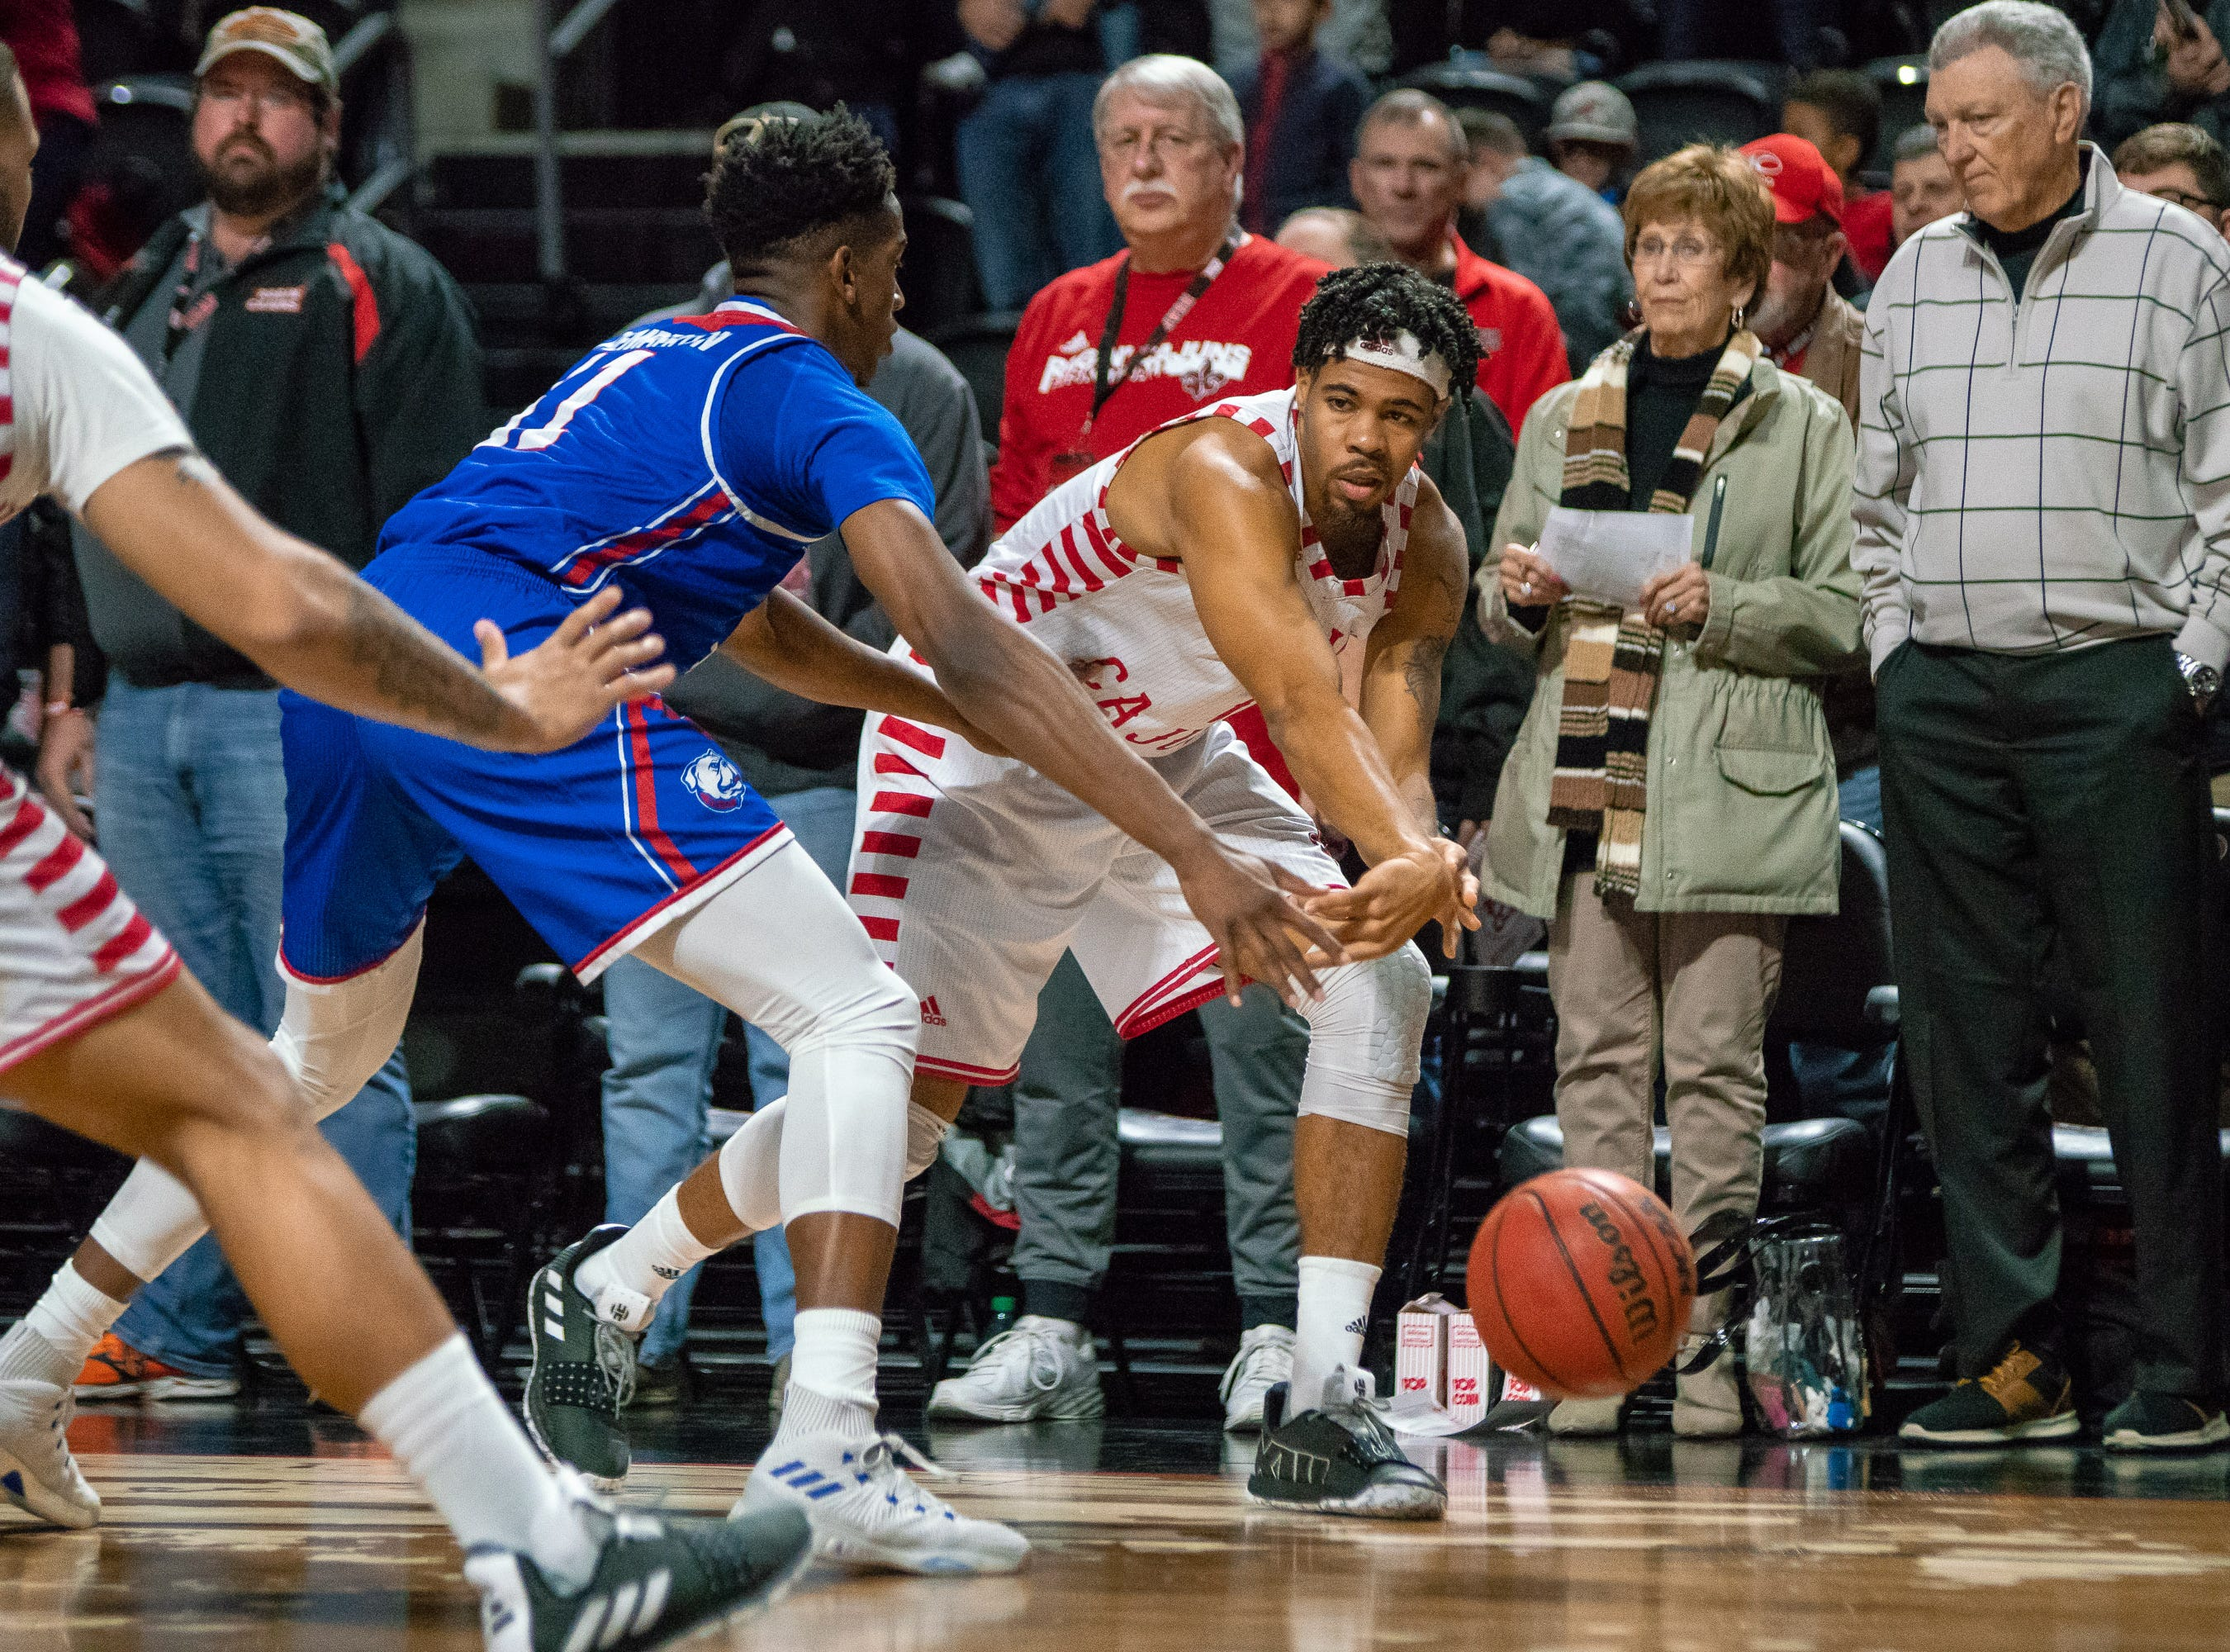 UL's Malik Marquetti passes the ball to his teammate as the Ragin' Cajuns take on the LA Tech Bulldogs at the Cajundome on December 15, 2018.